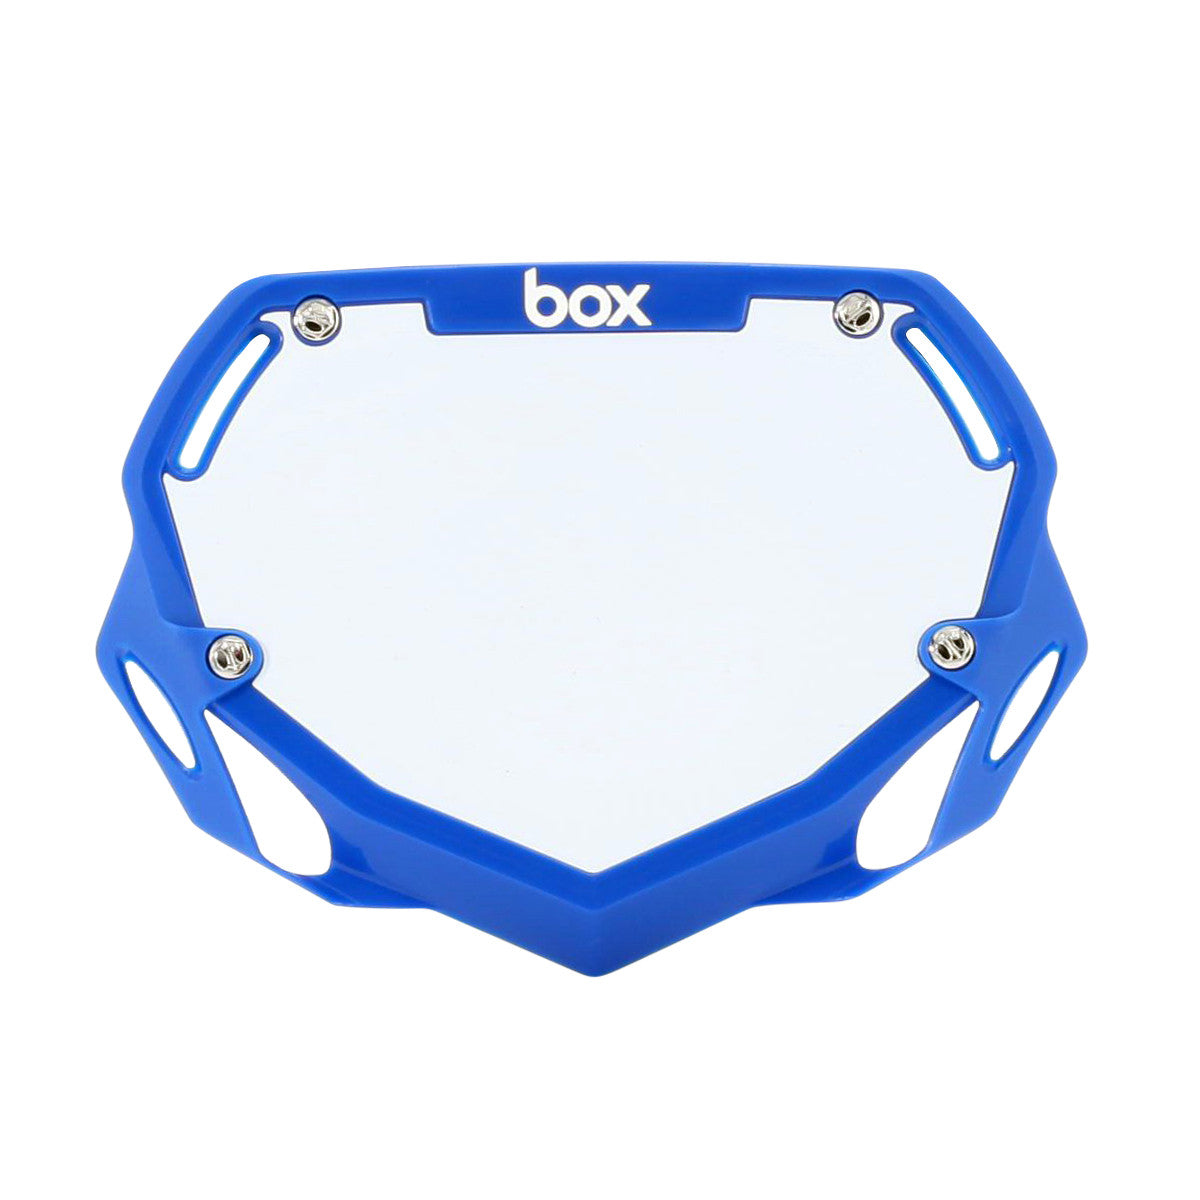 Box Two Mini / Cruiser BMX Number Plate - Blue + White